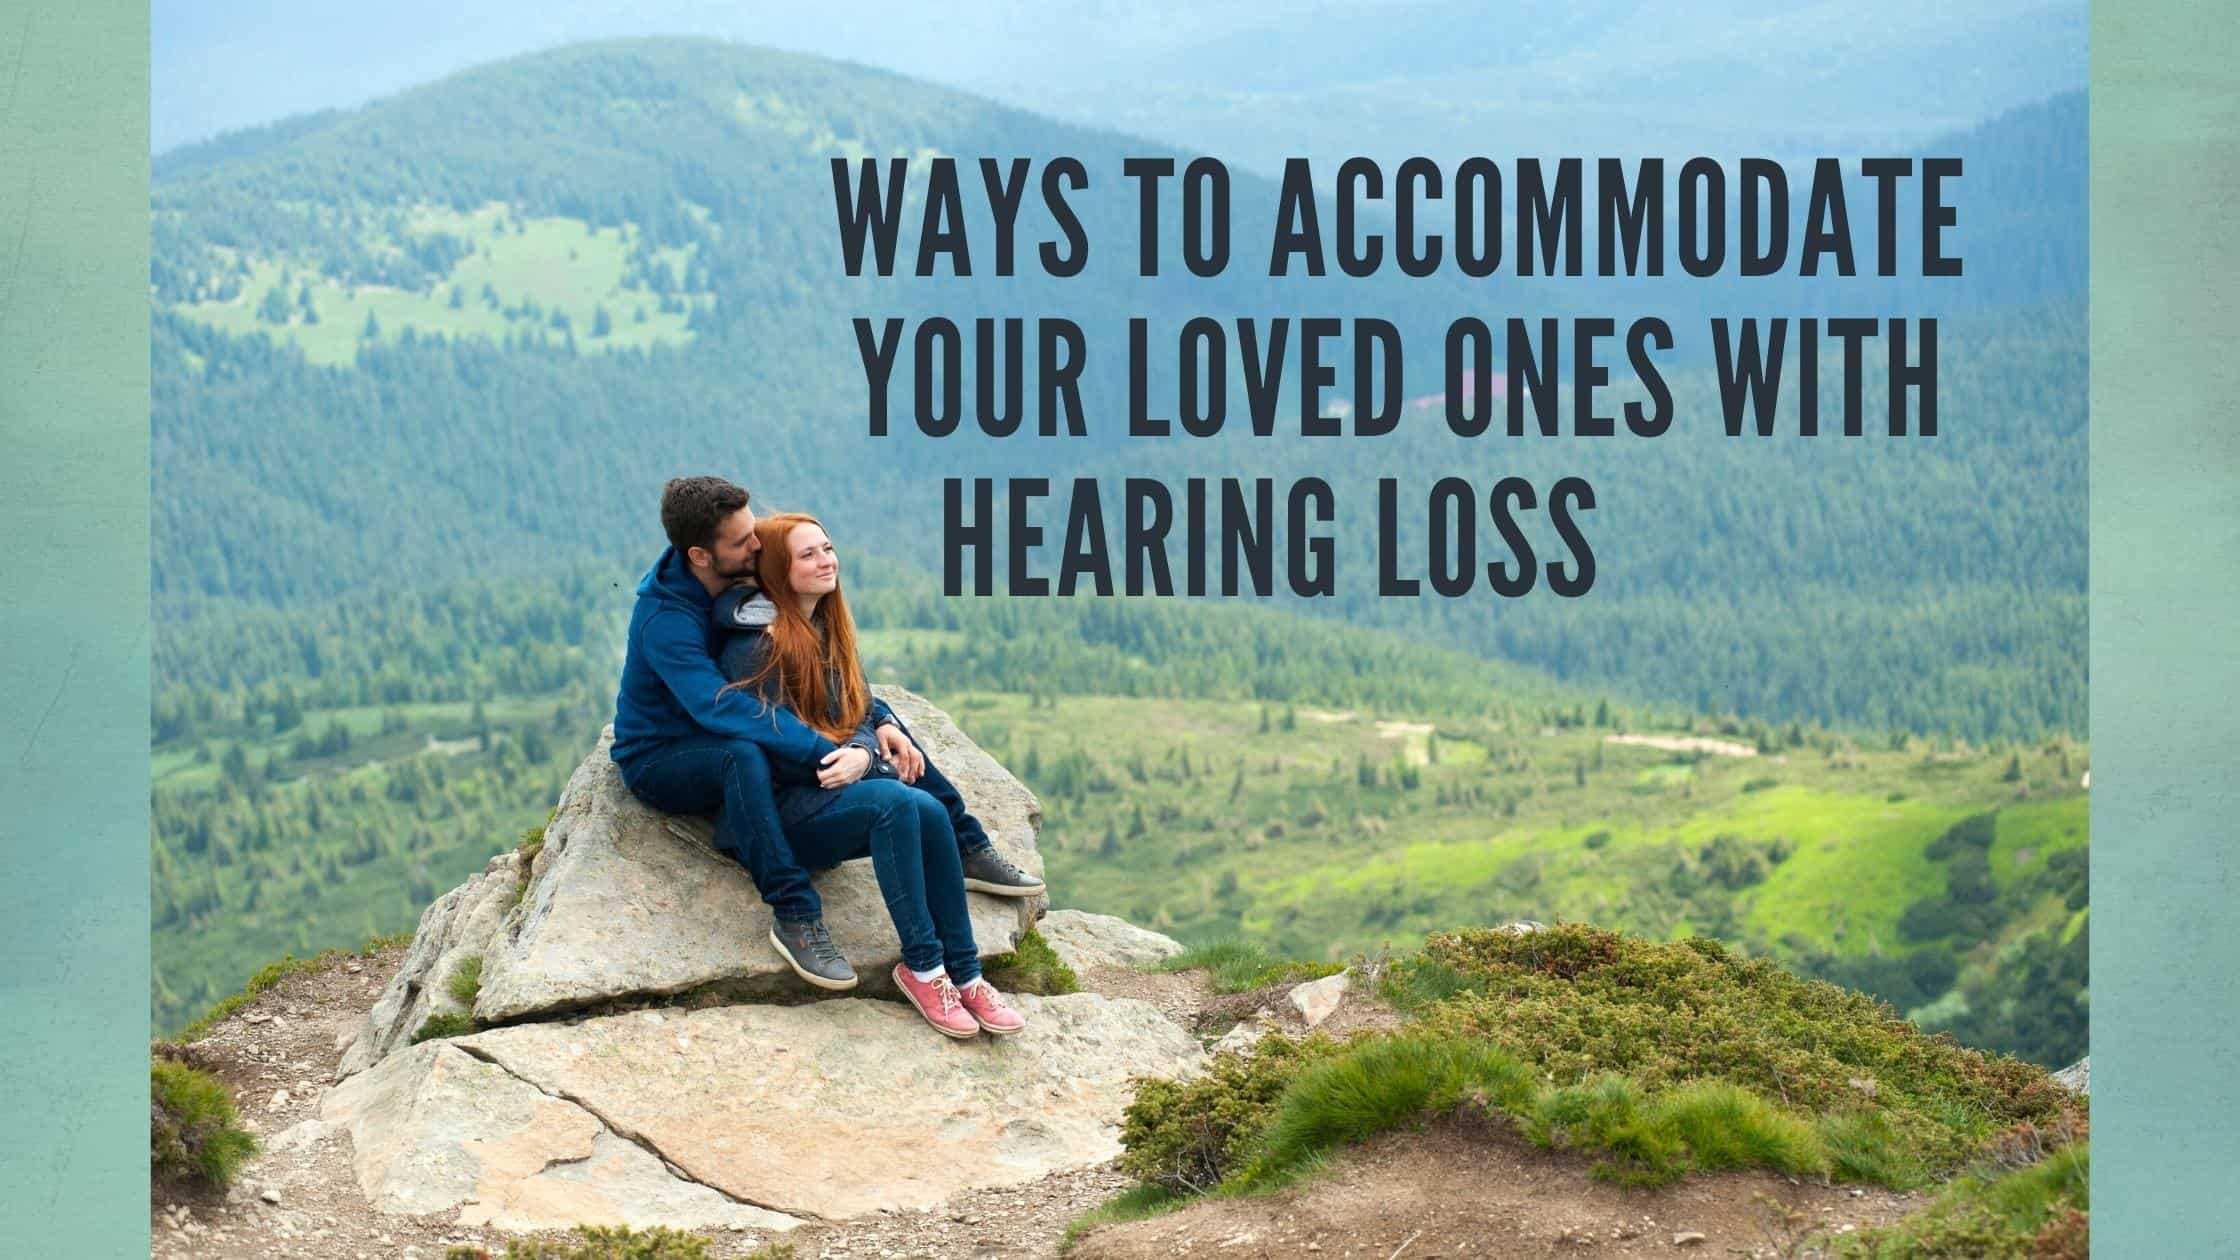 Ways-to-Accommodate-Your-Loved-Ones-with-Hearing-Loss